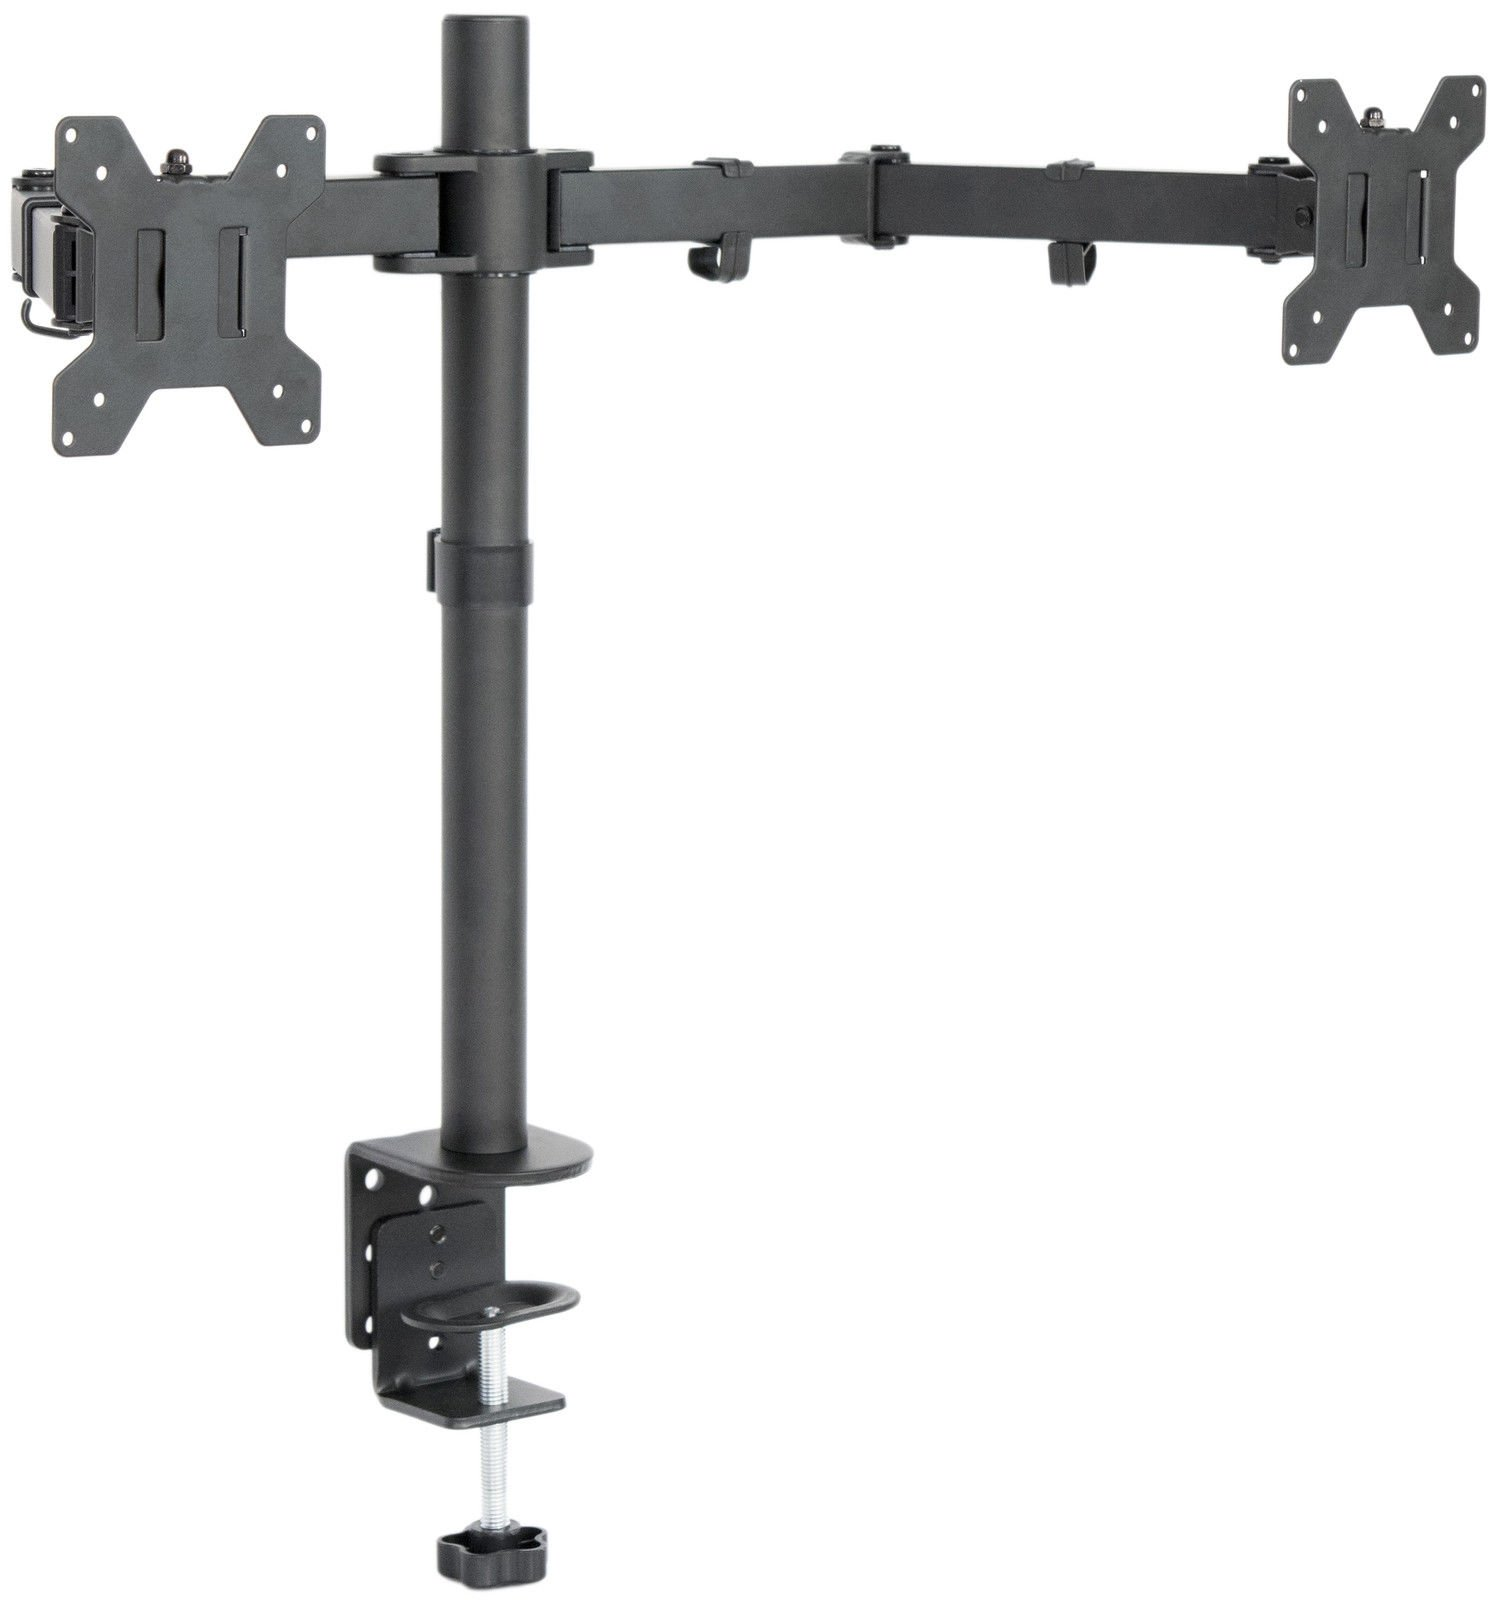 Dual LCD Monitor Desk Mount Stand Heavy Duty Fully Adjustable 2 Screens upto 27''